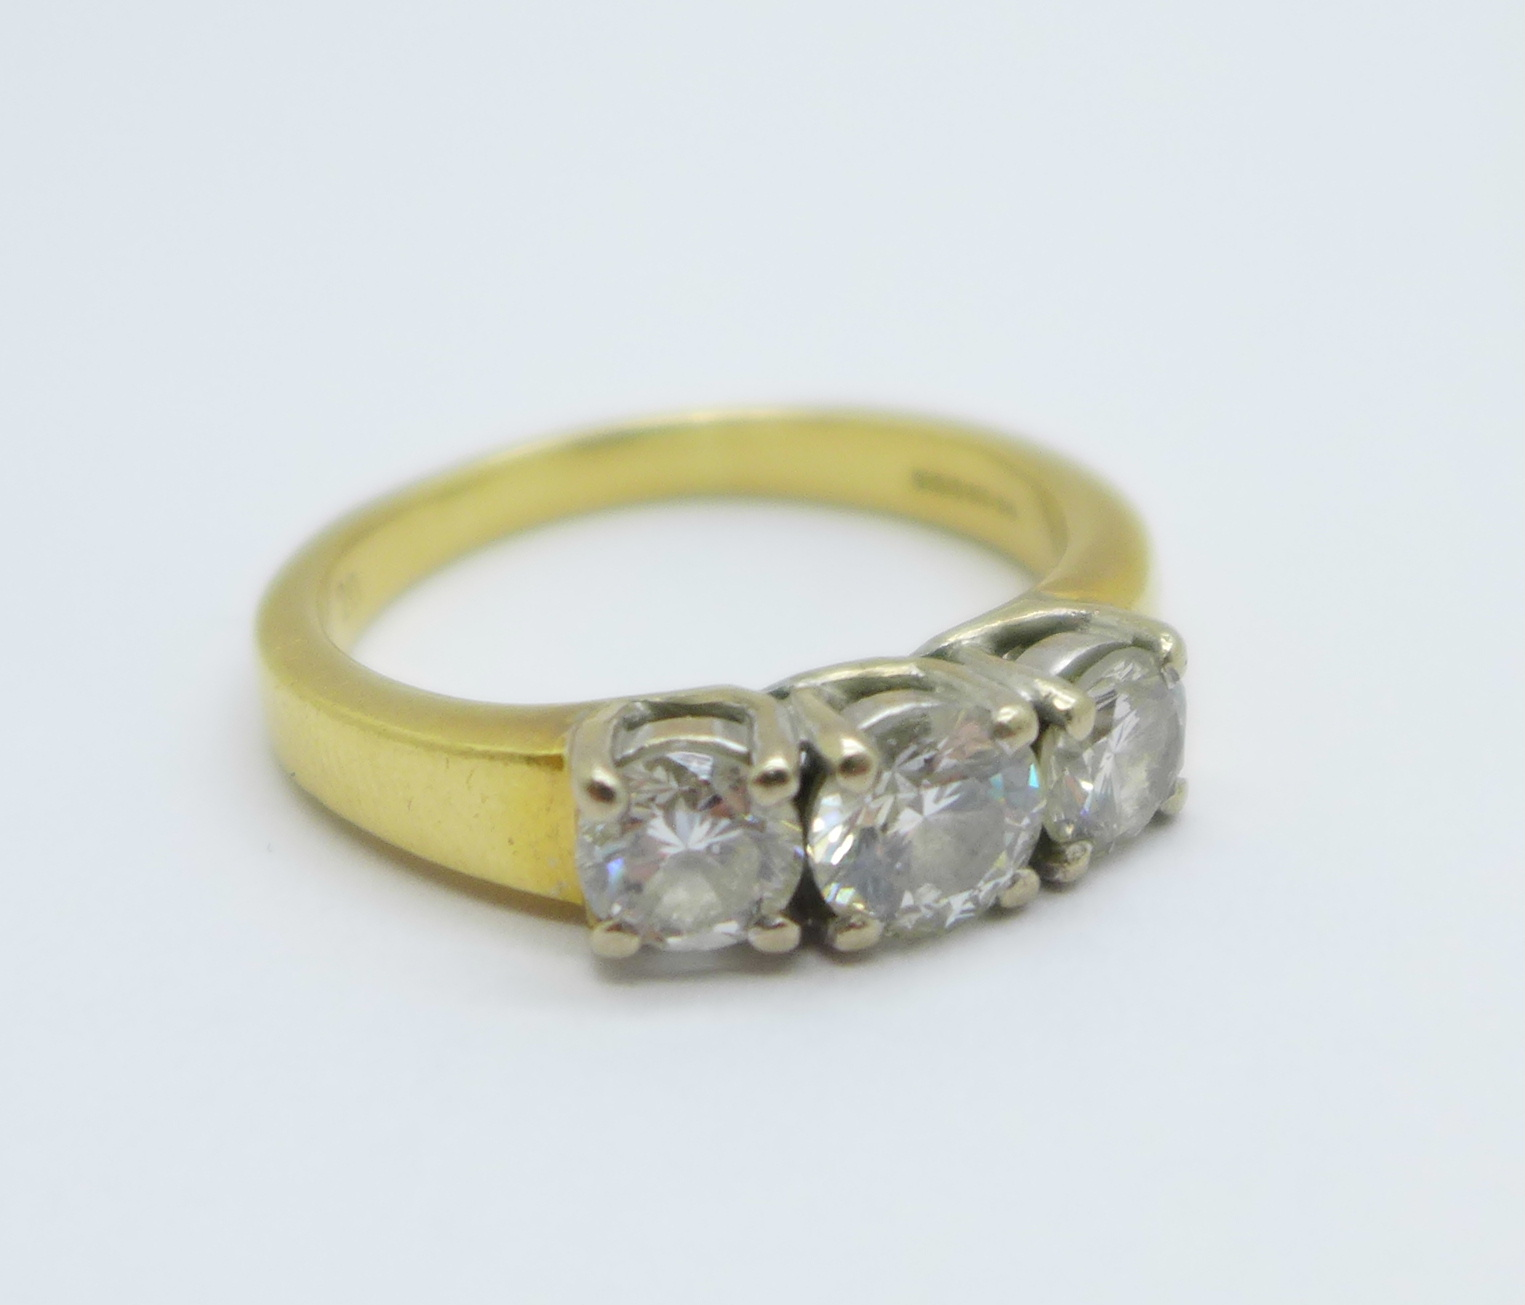 An 18ct yellow gold three stone diamond ring, approximately 1.25 carat total diamond weight, 8.6g, V - Image 6 of 6